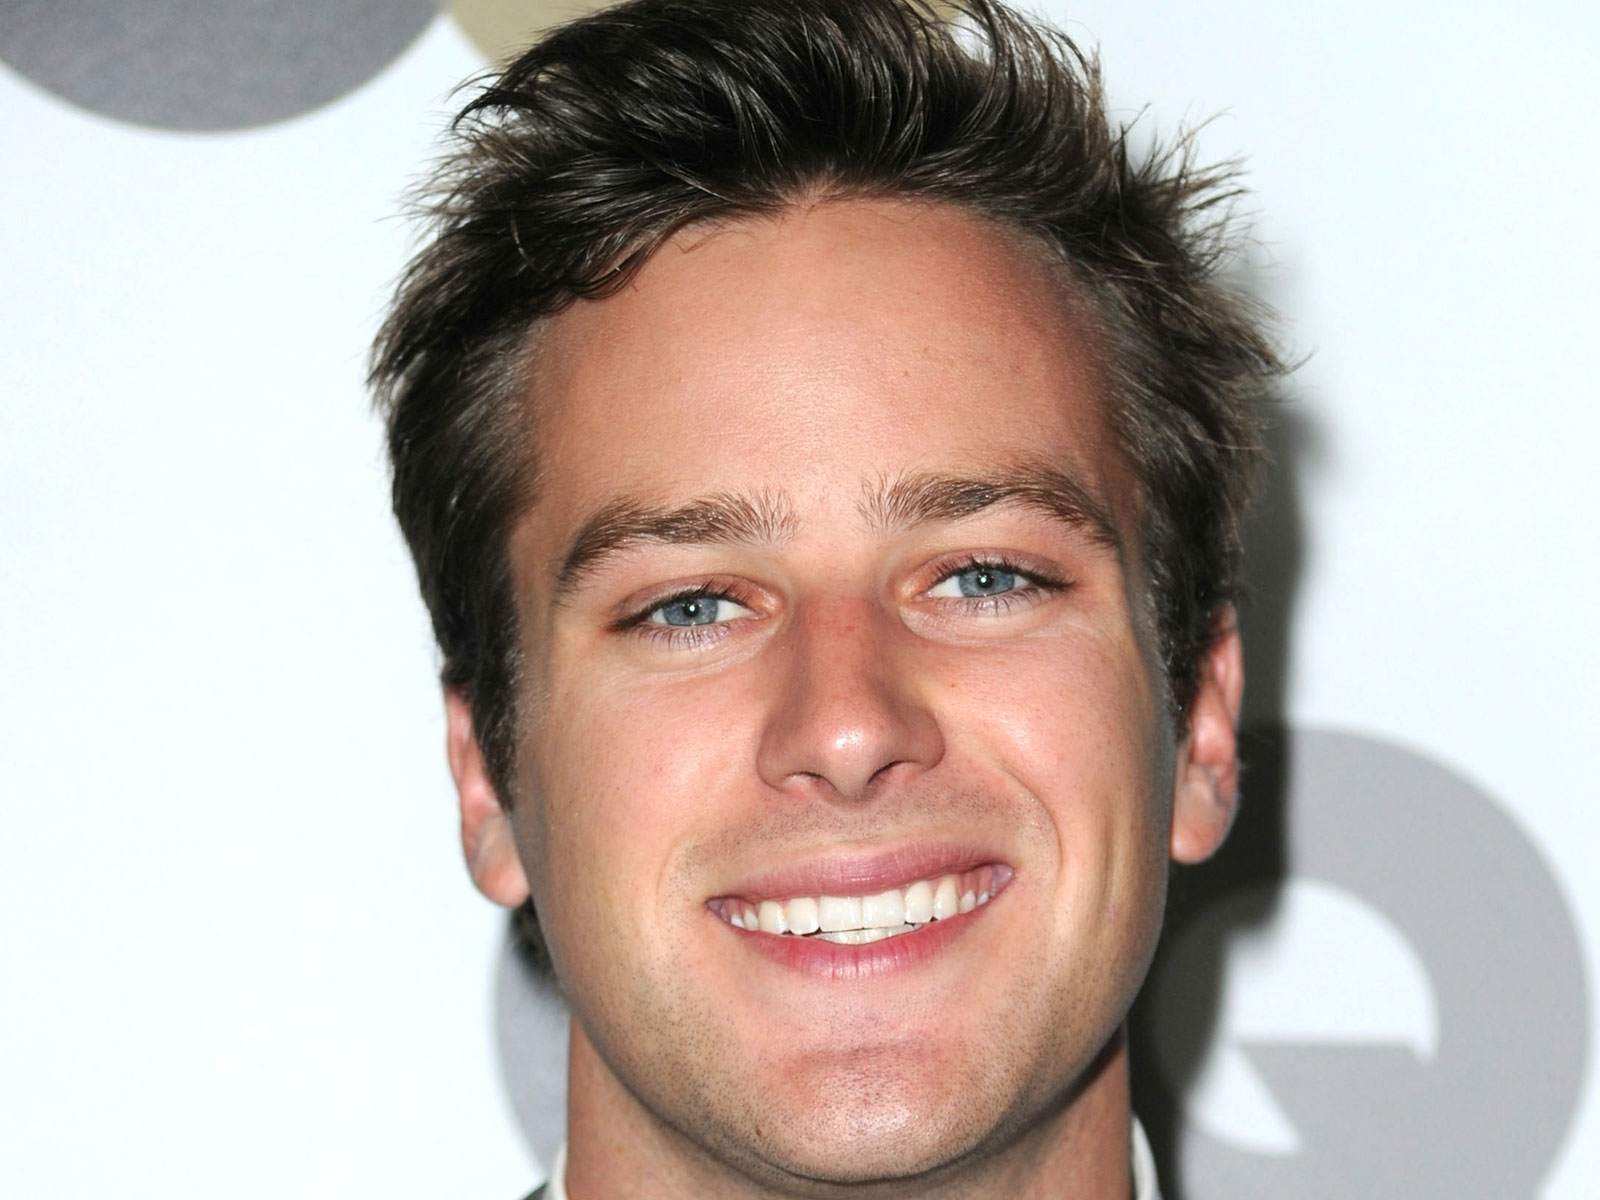 Armie Hammer Wallpapers Images Photos Pictures Backgrounds